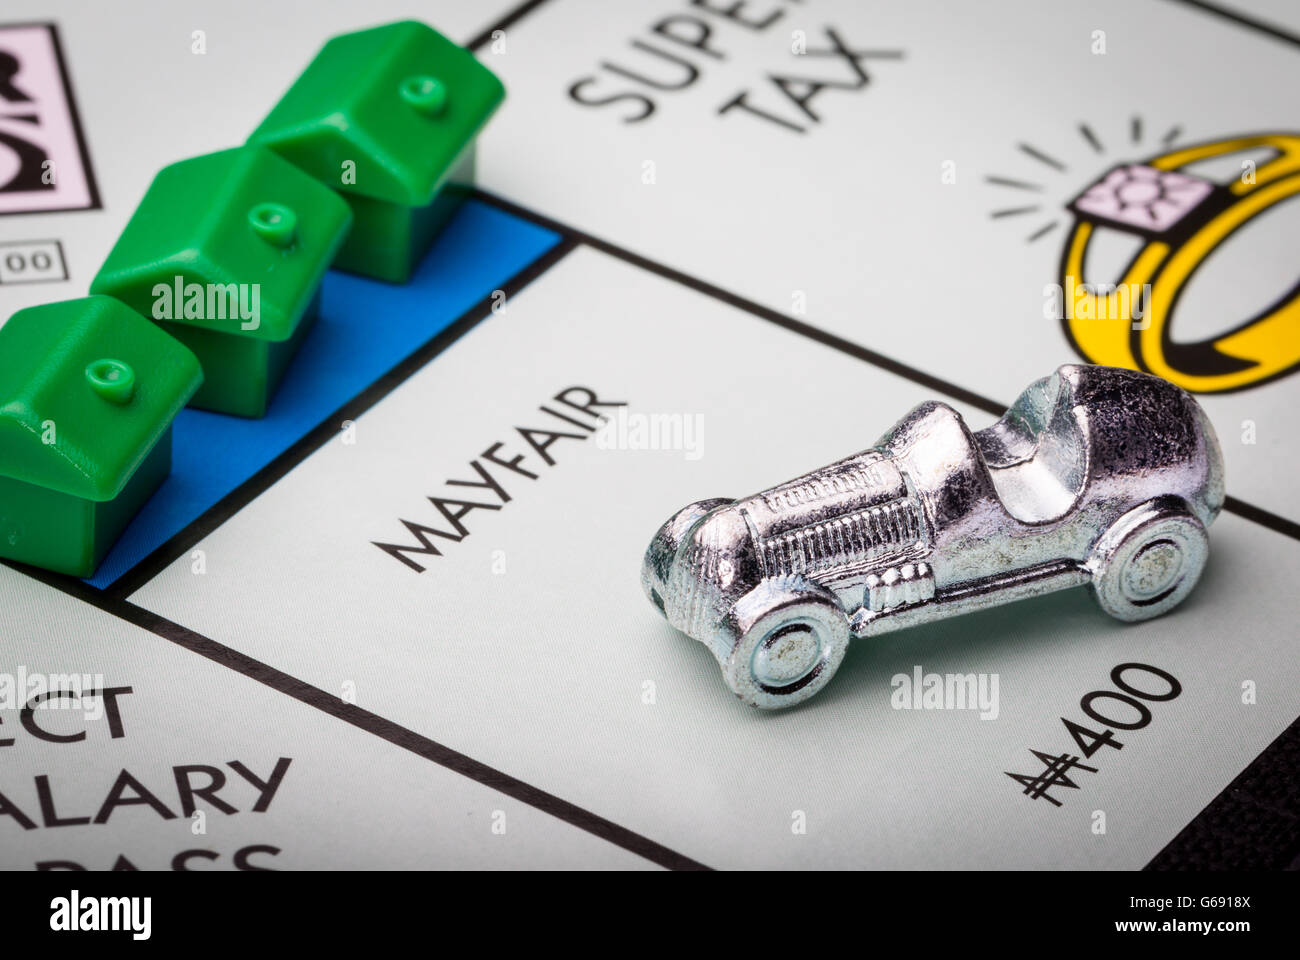 Mayfair on the Monopoly board game - Stock Image